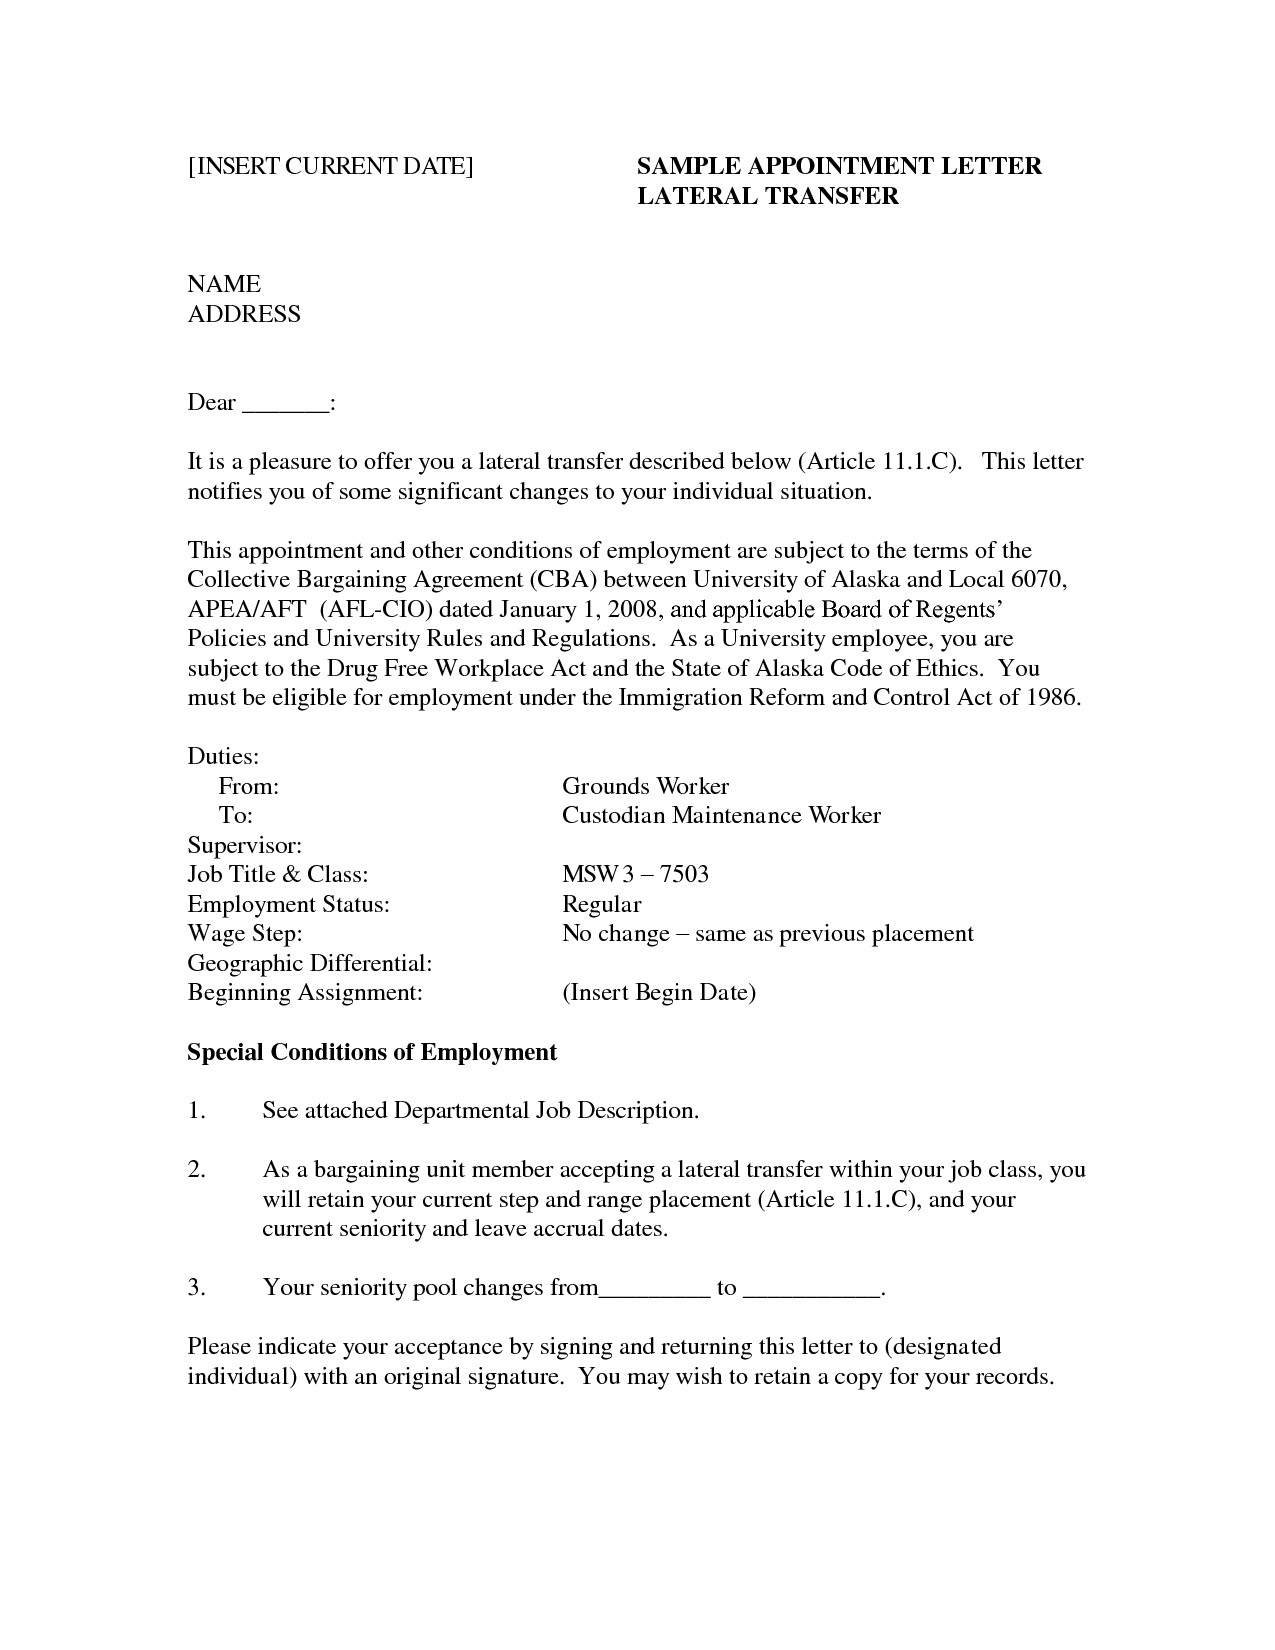 Maintenance Cover Letter Template - Beautiful Resume and Cover Letter Templates Your Template